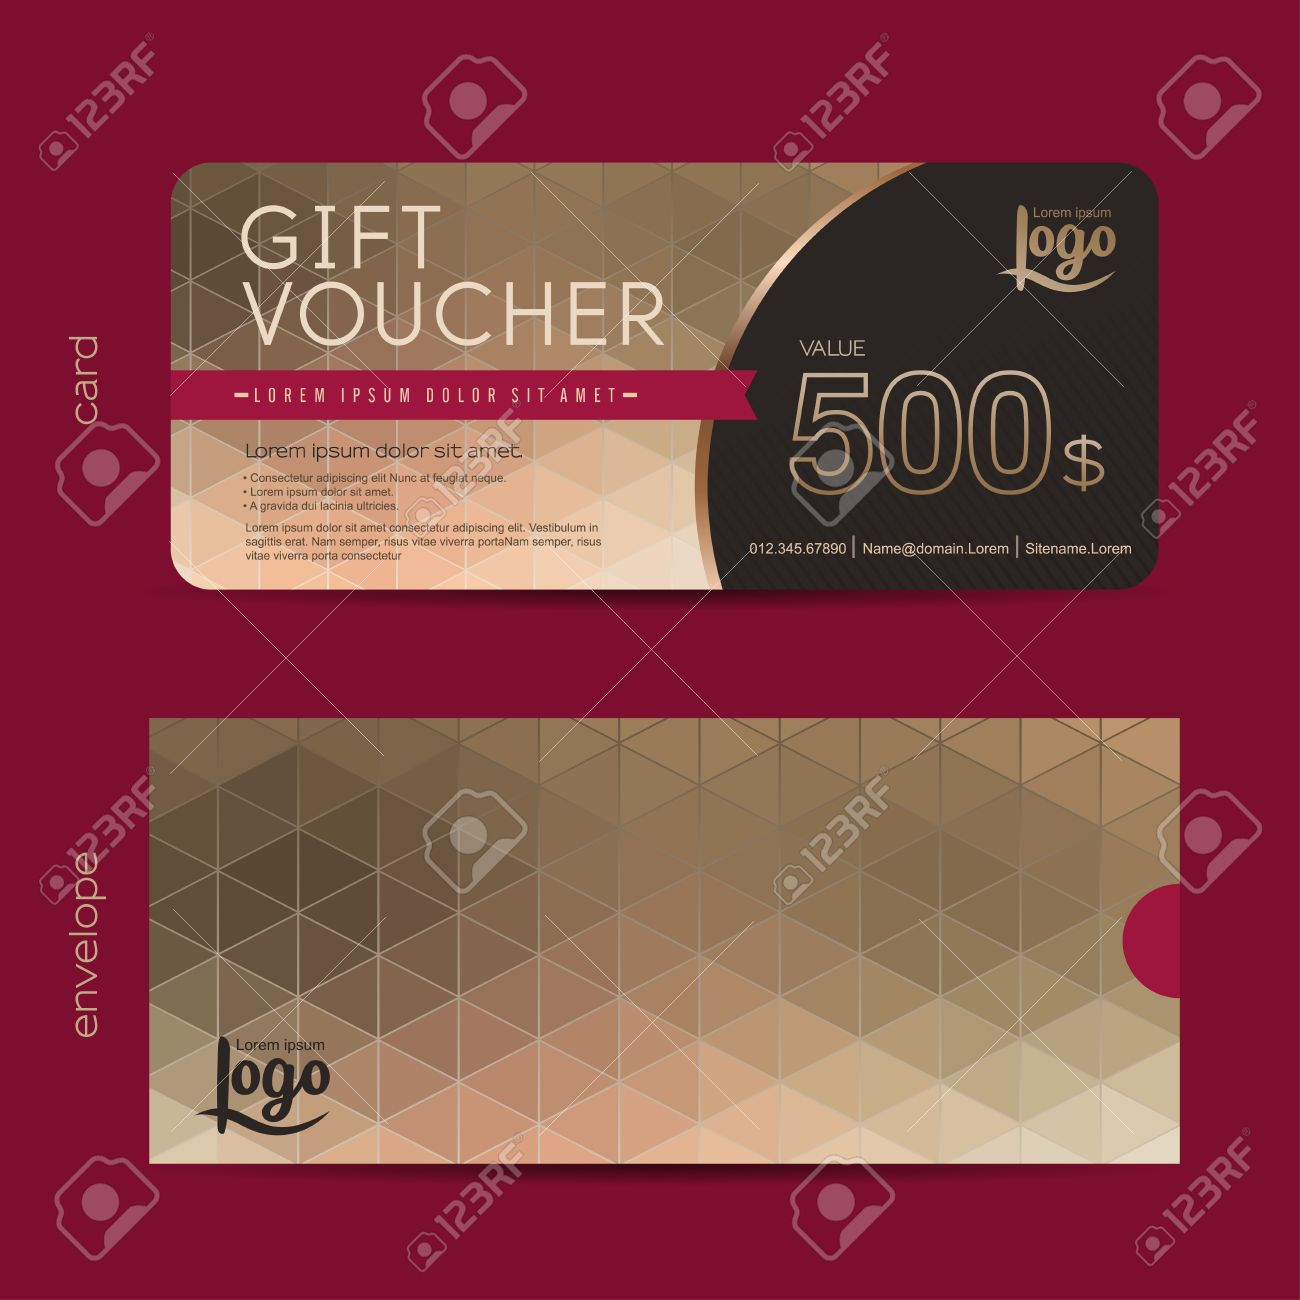 Gift Voucher Template With Premium Pattern And Envelope Design – Template for a Voucher